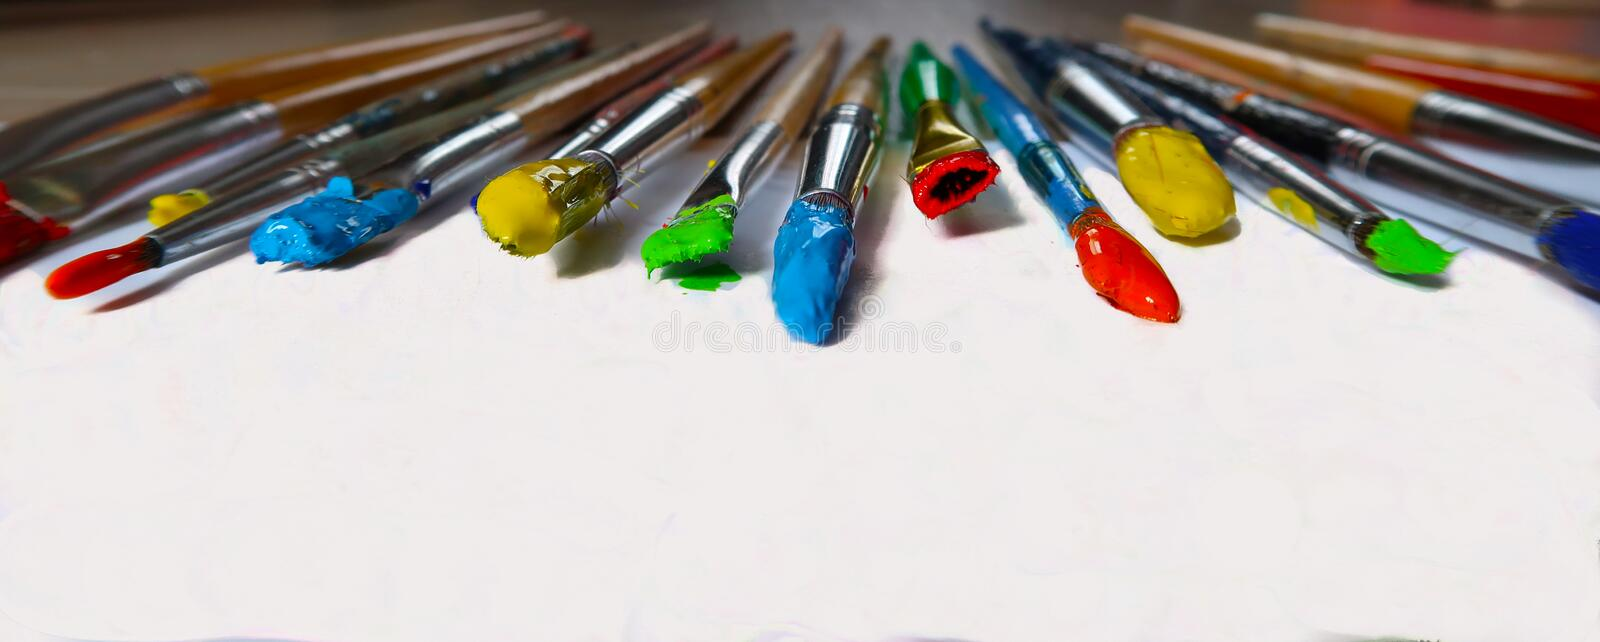 Colorful Paint Brushes Laid Out stock image